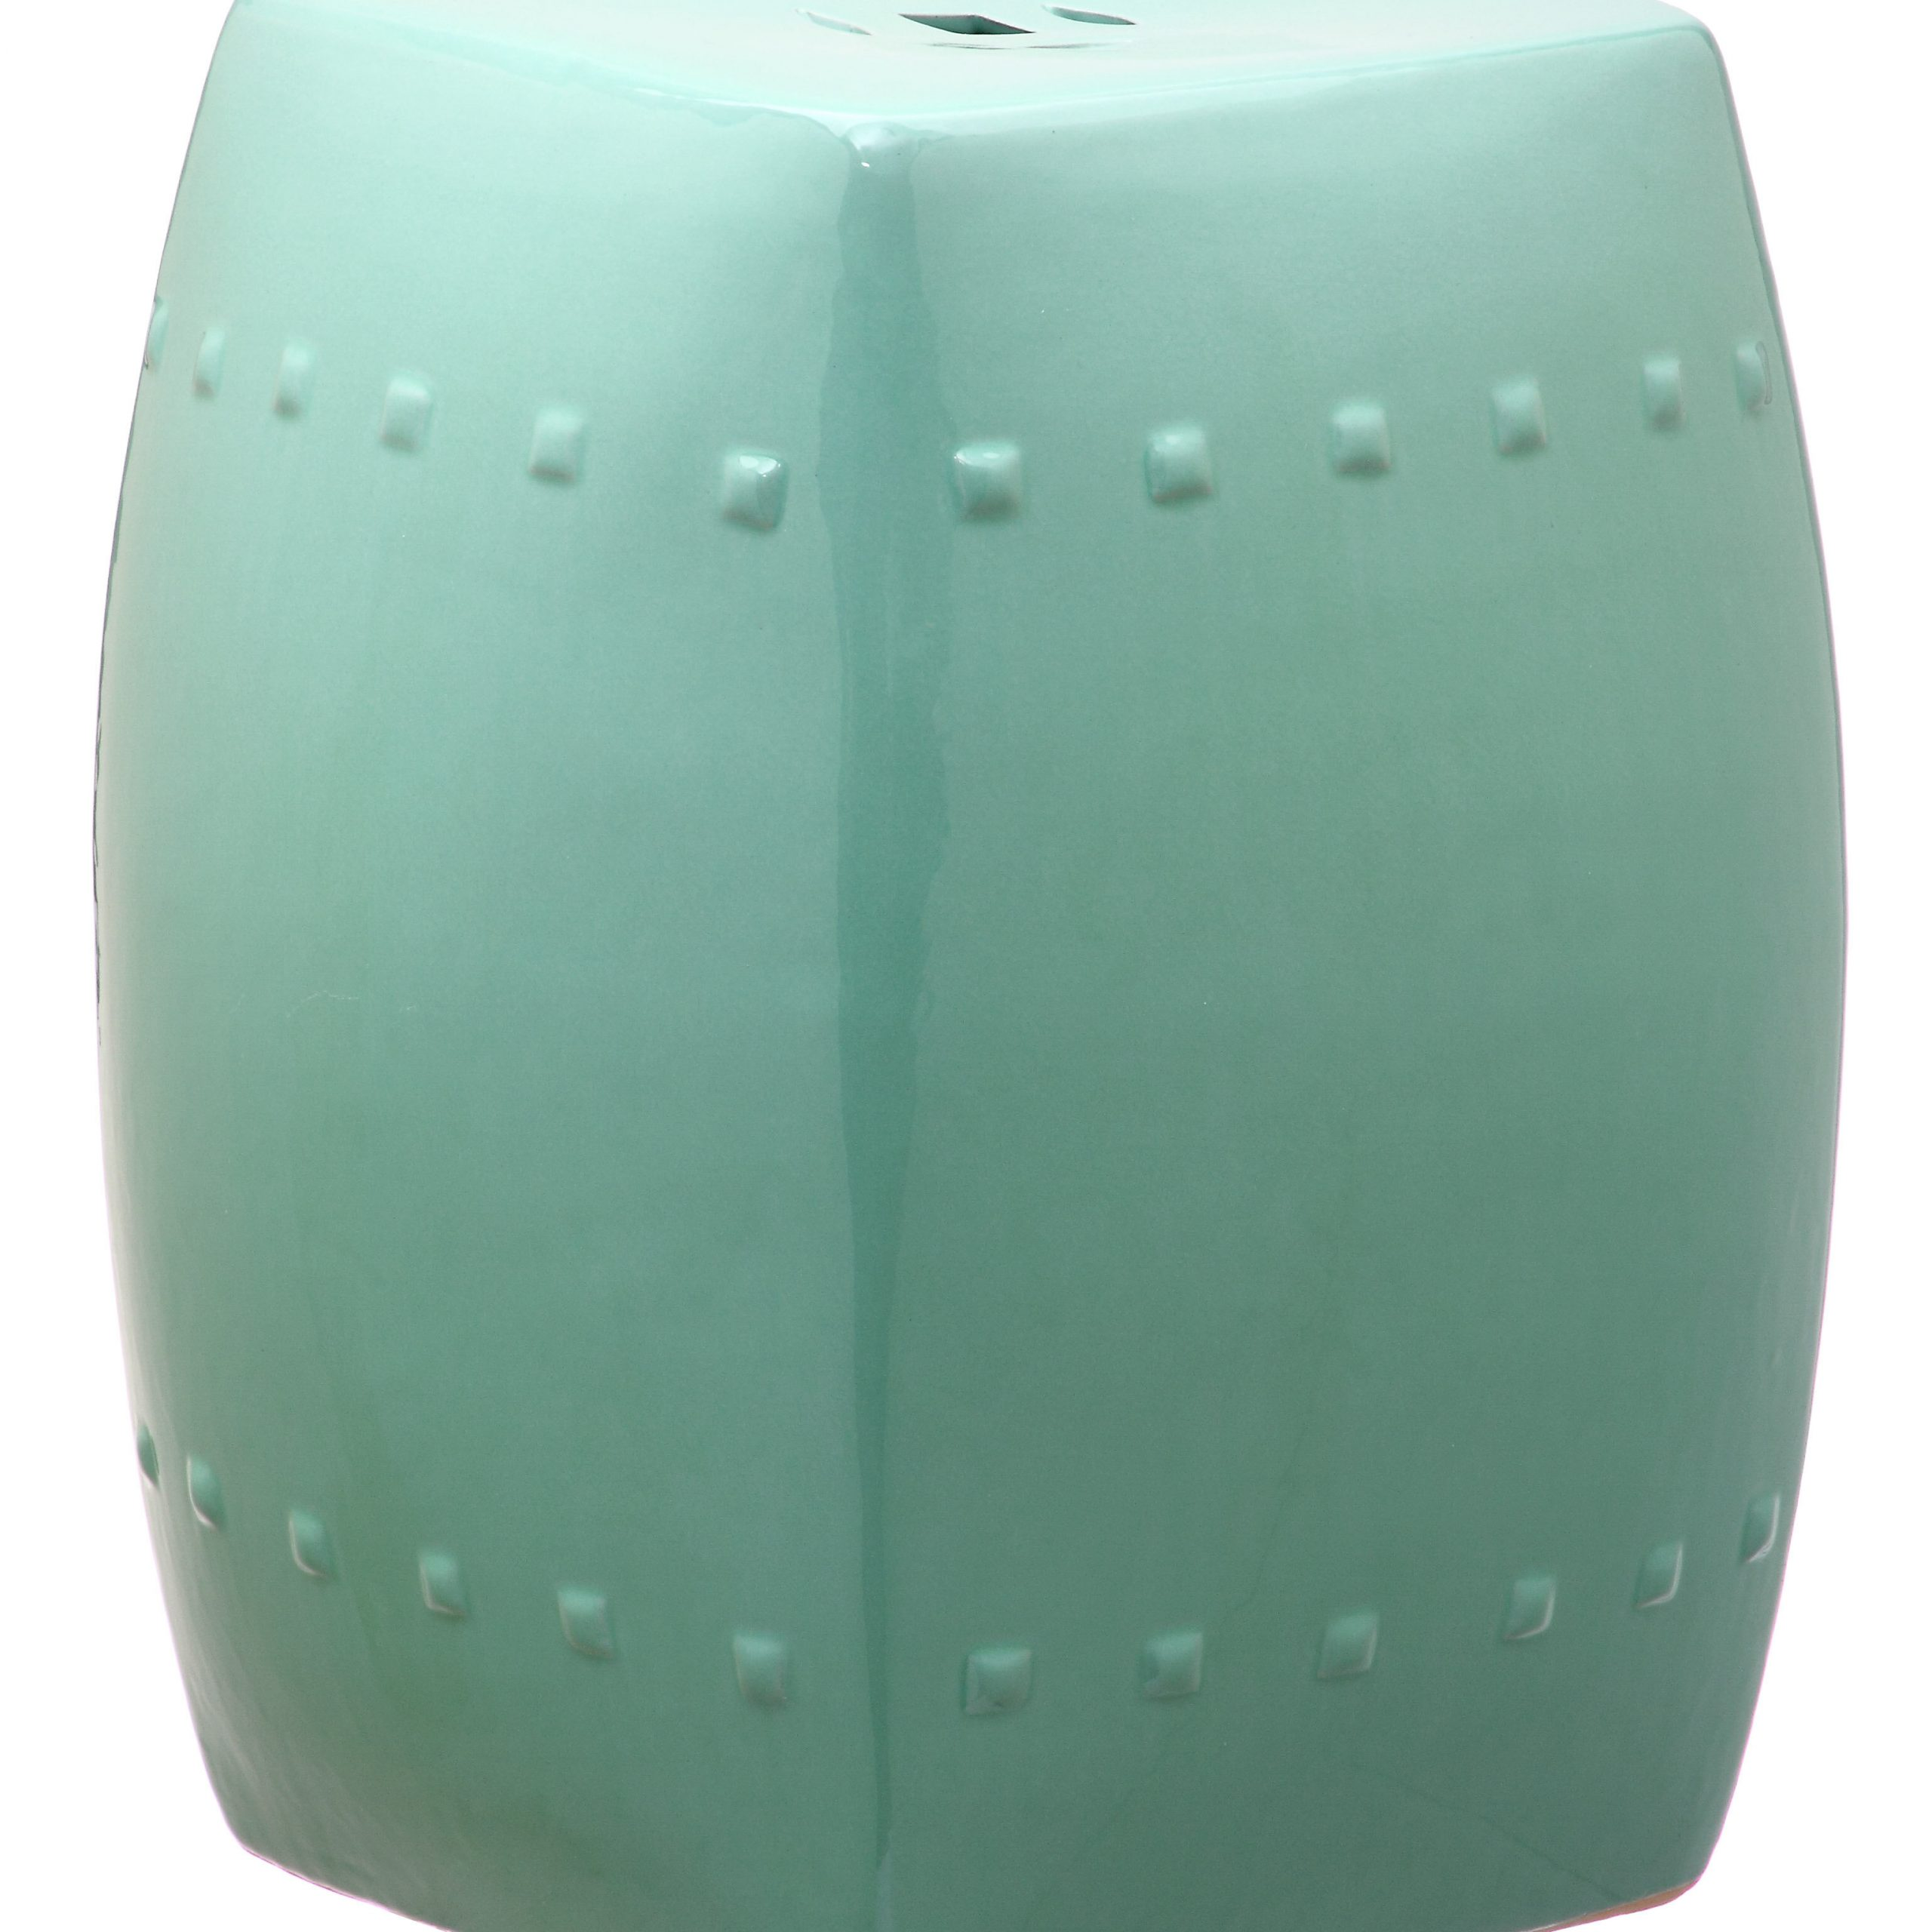 Knudson Ceramic Garden Stool With Horsforth Garden Stools (View 14 of 25)